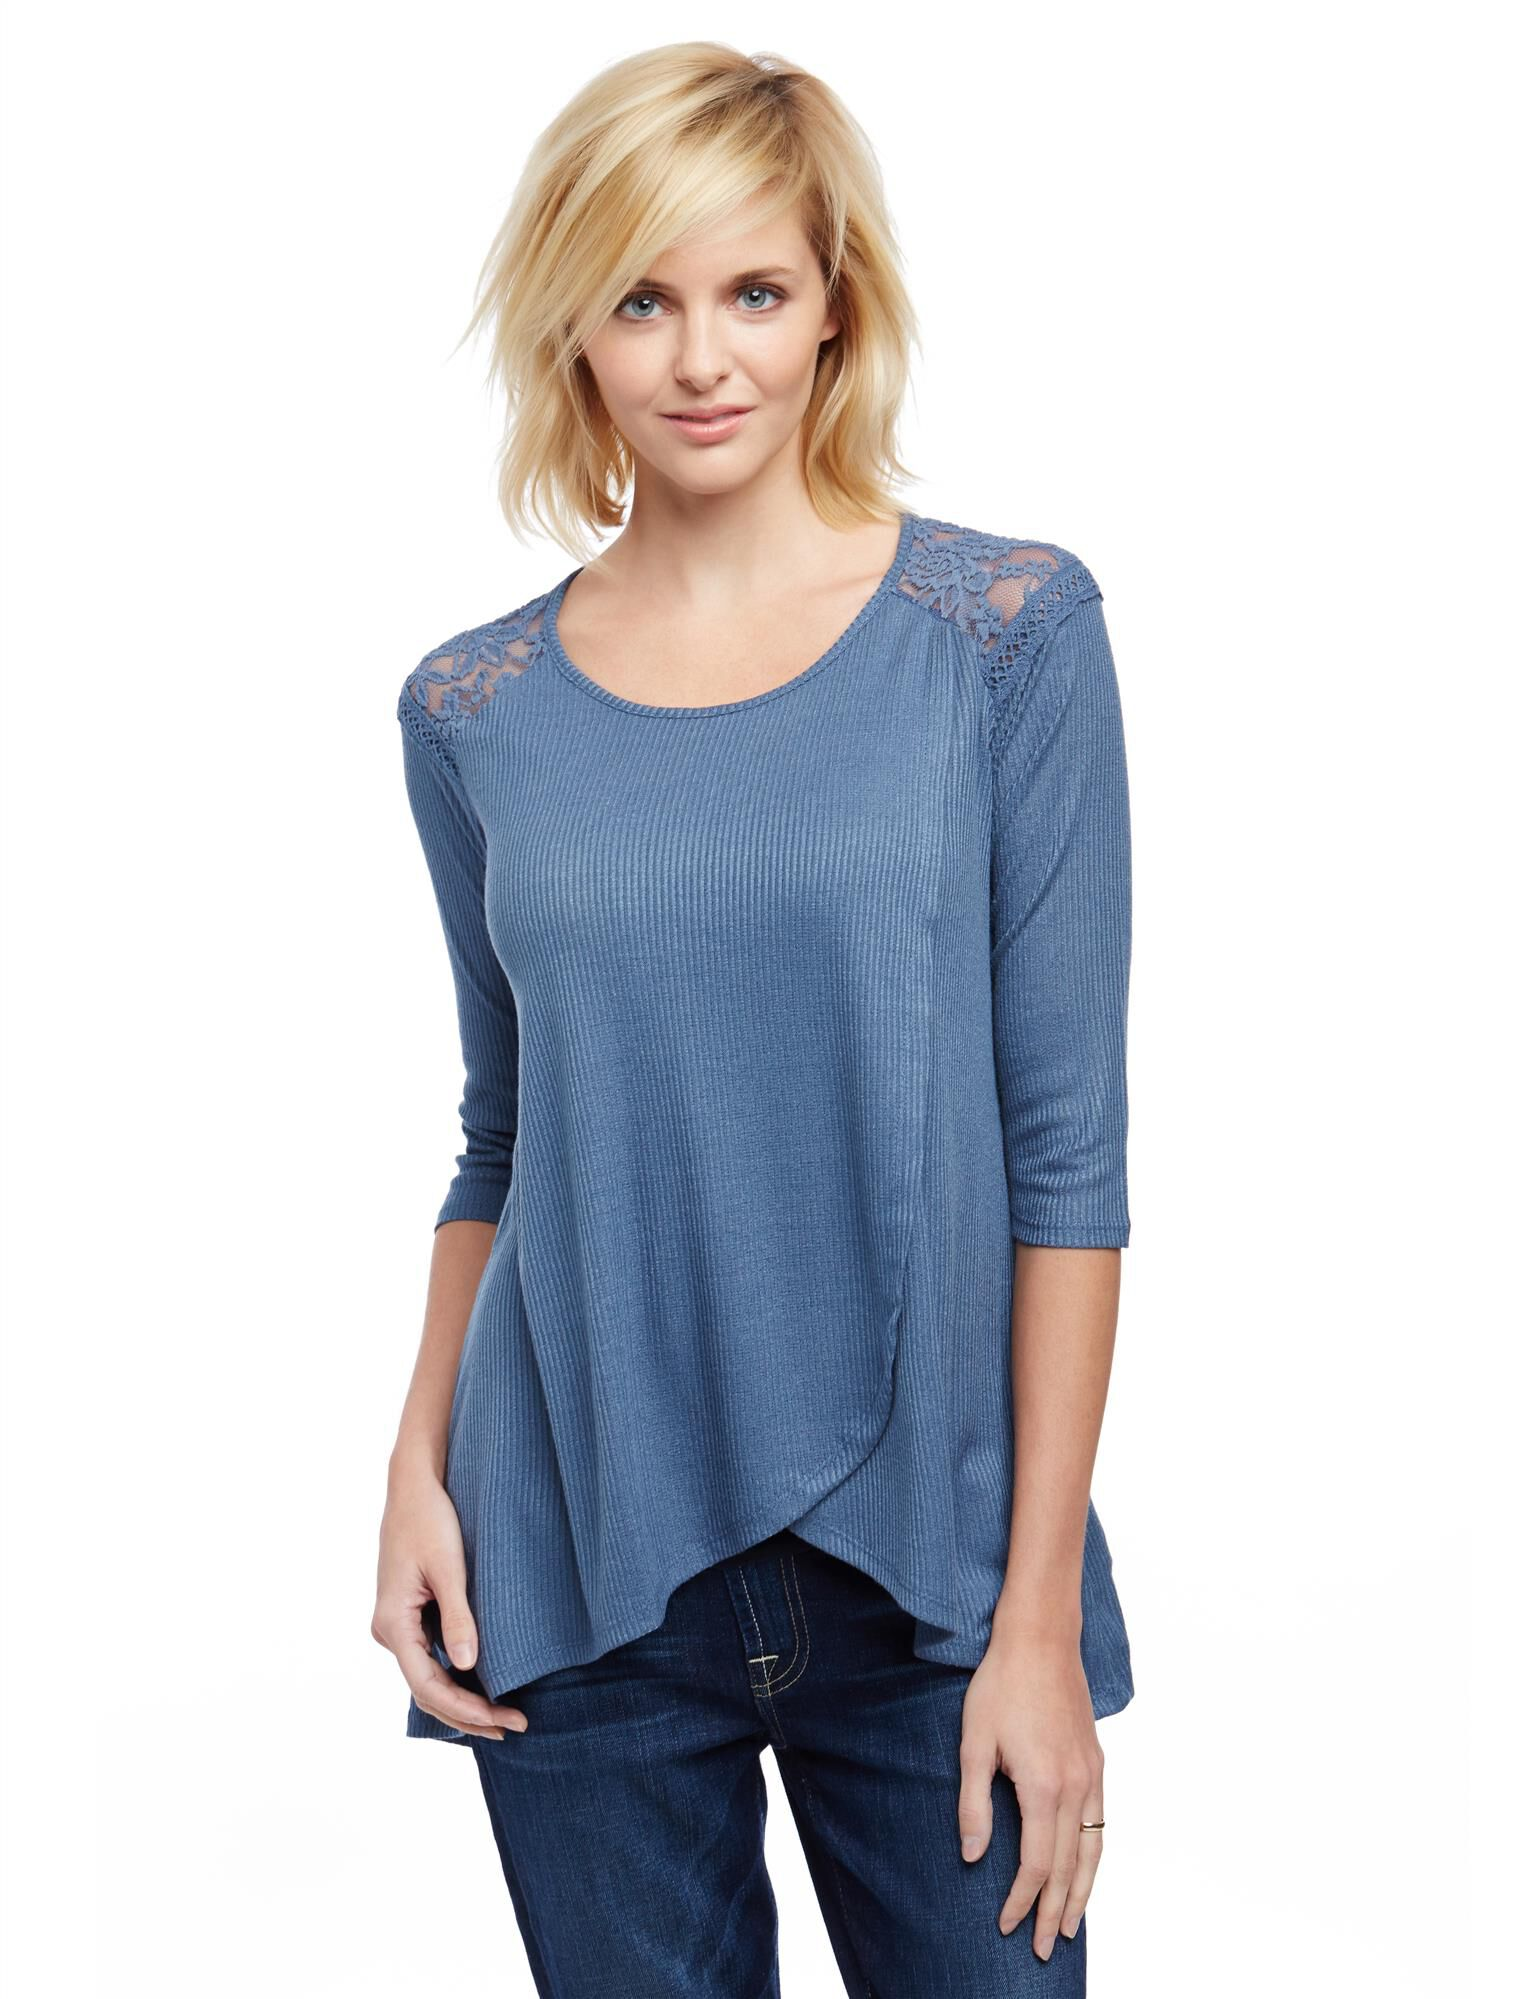 Jessica Simpson Lace Pull Over Nursing Top- Blue